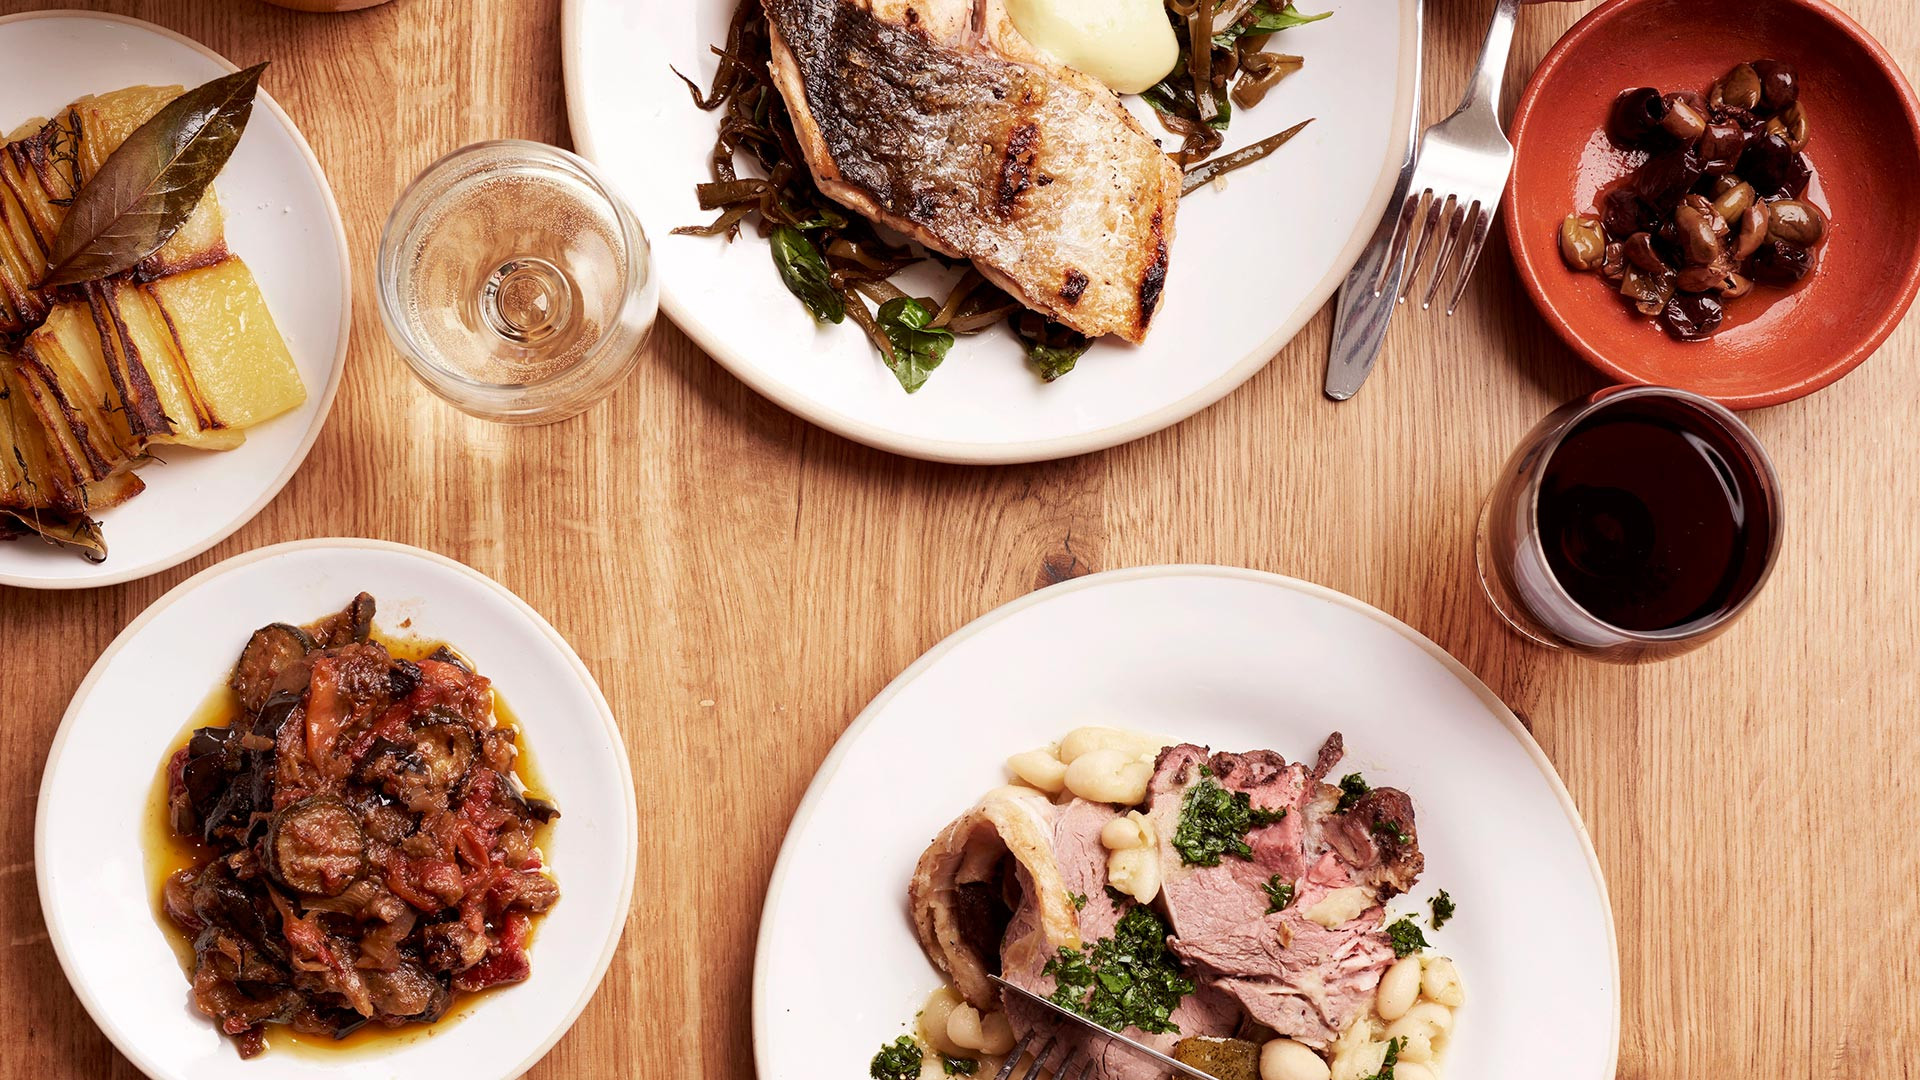 Sardine focuses on food from the south of France